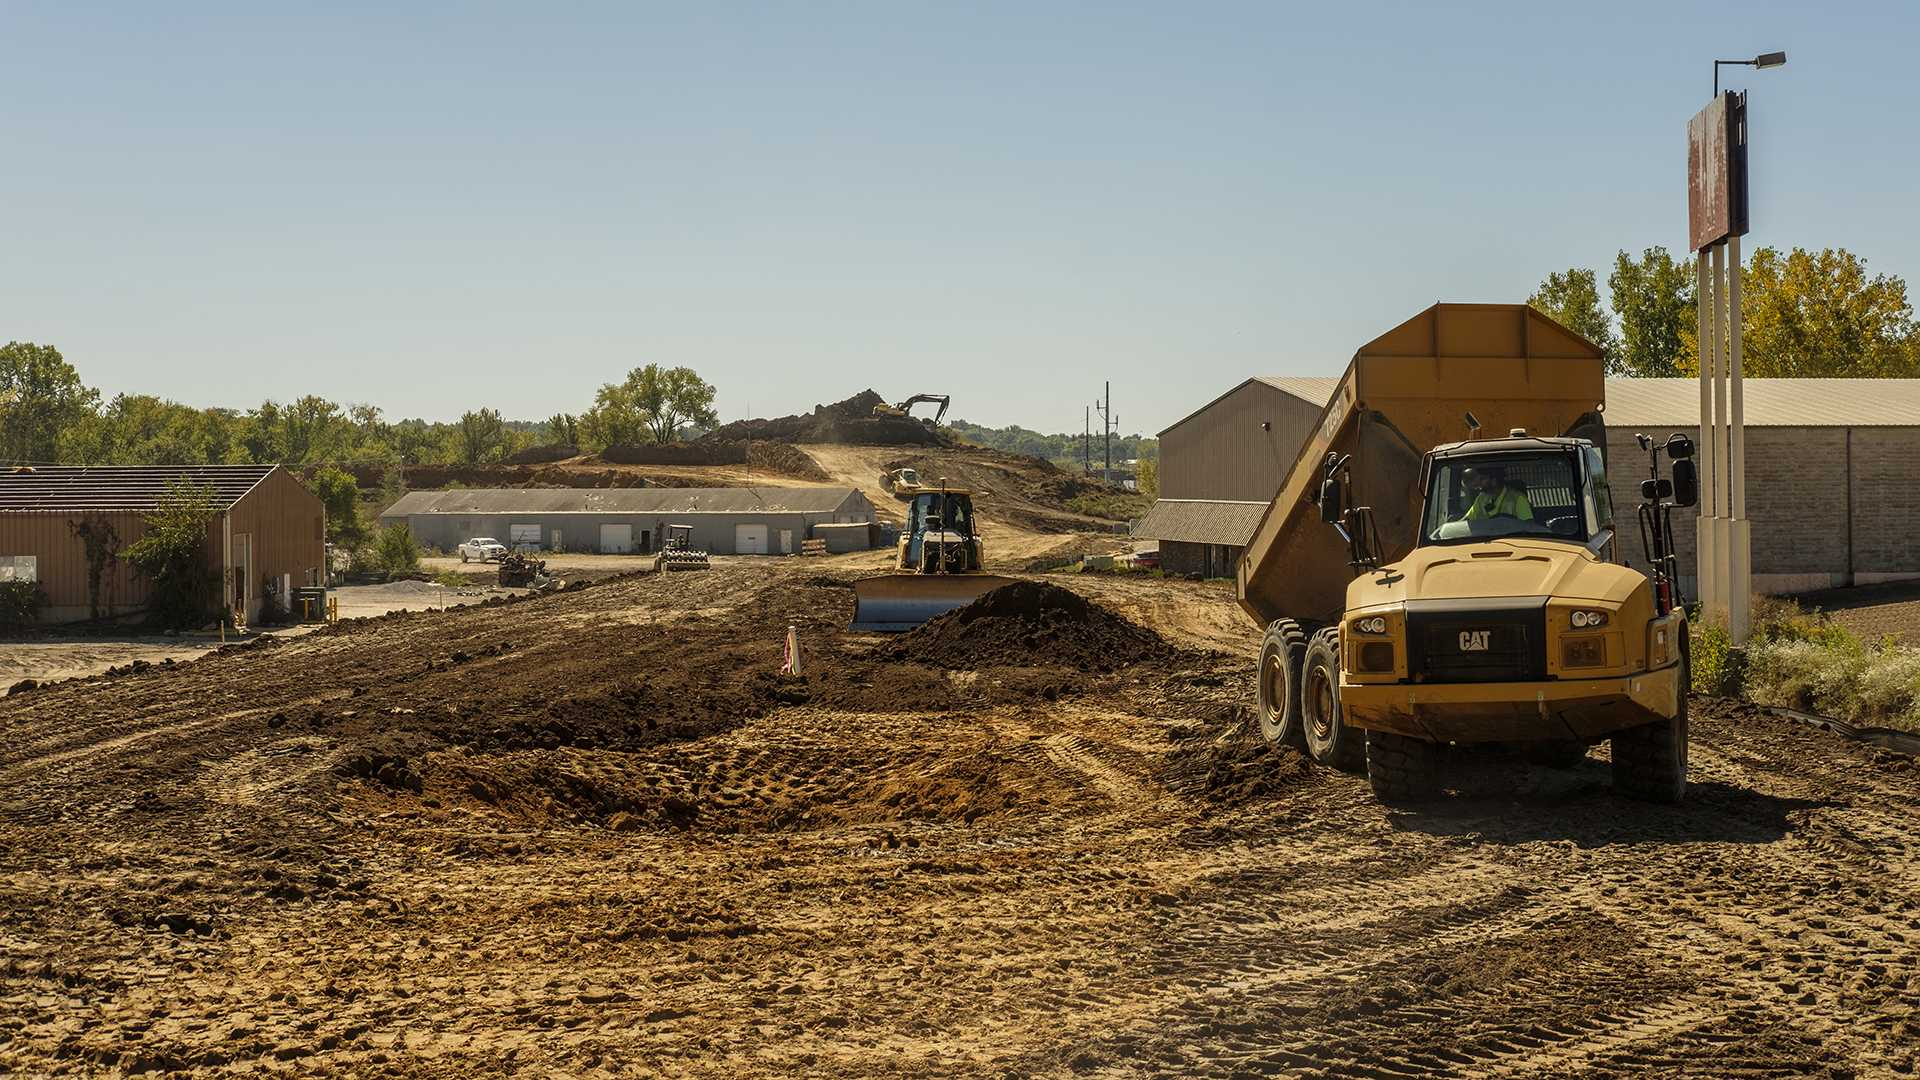 Construction workers begin work at the site of the Planned Iowa River Landing Stadium in Coralville on Thursday, Sept. 28, 2017. The plans for the arena call for a 6,000 seat stadium capable of hosting a variety of events. (Nick Rohlman/The Daily Iowan)